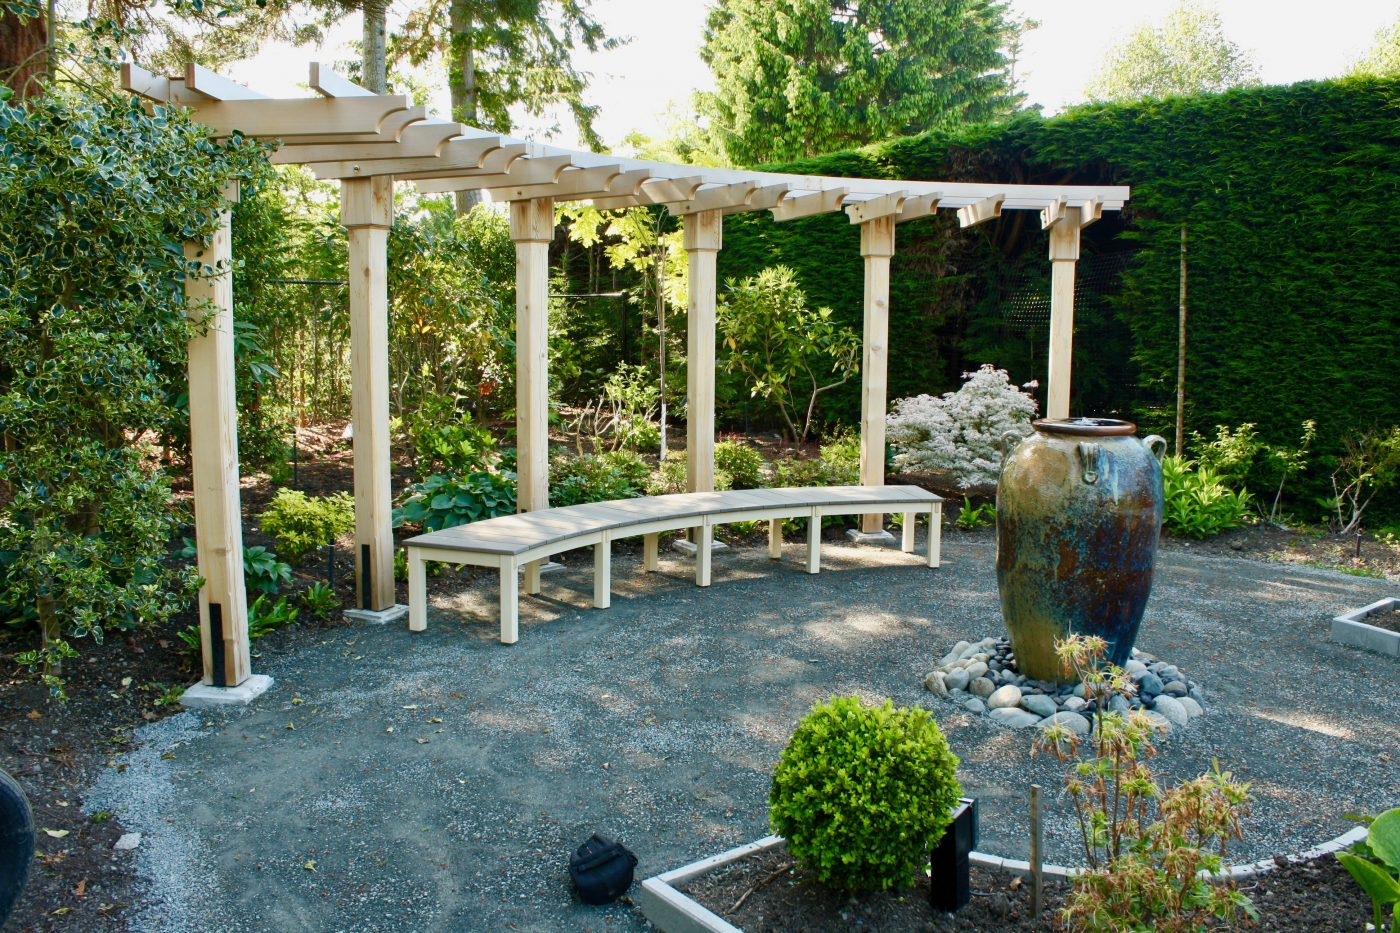 Curved garden bench under arbour